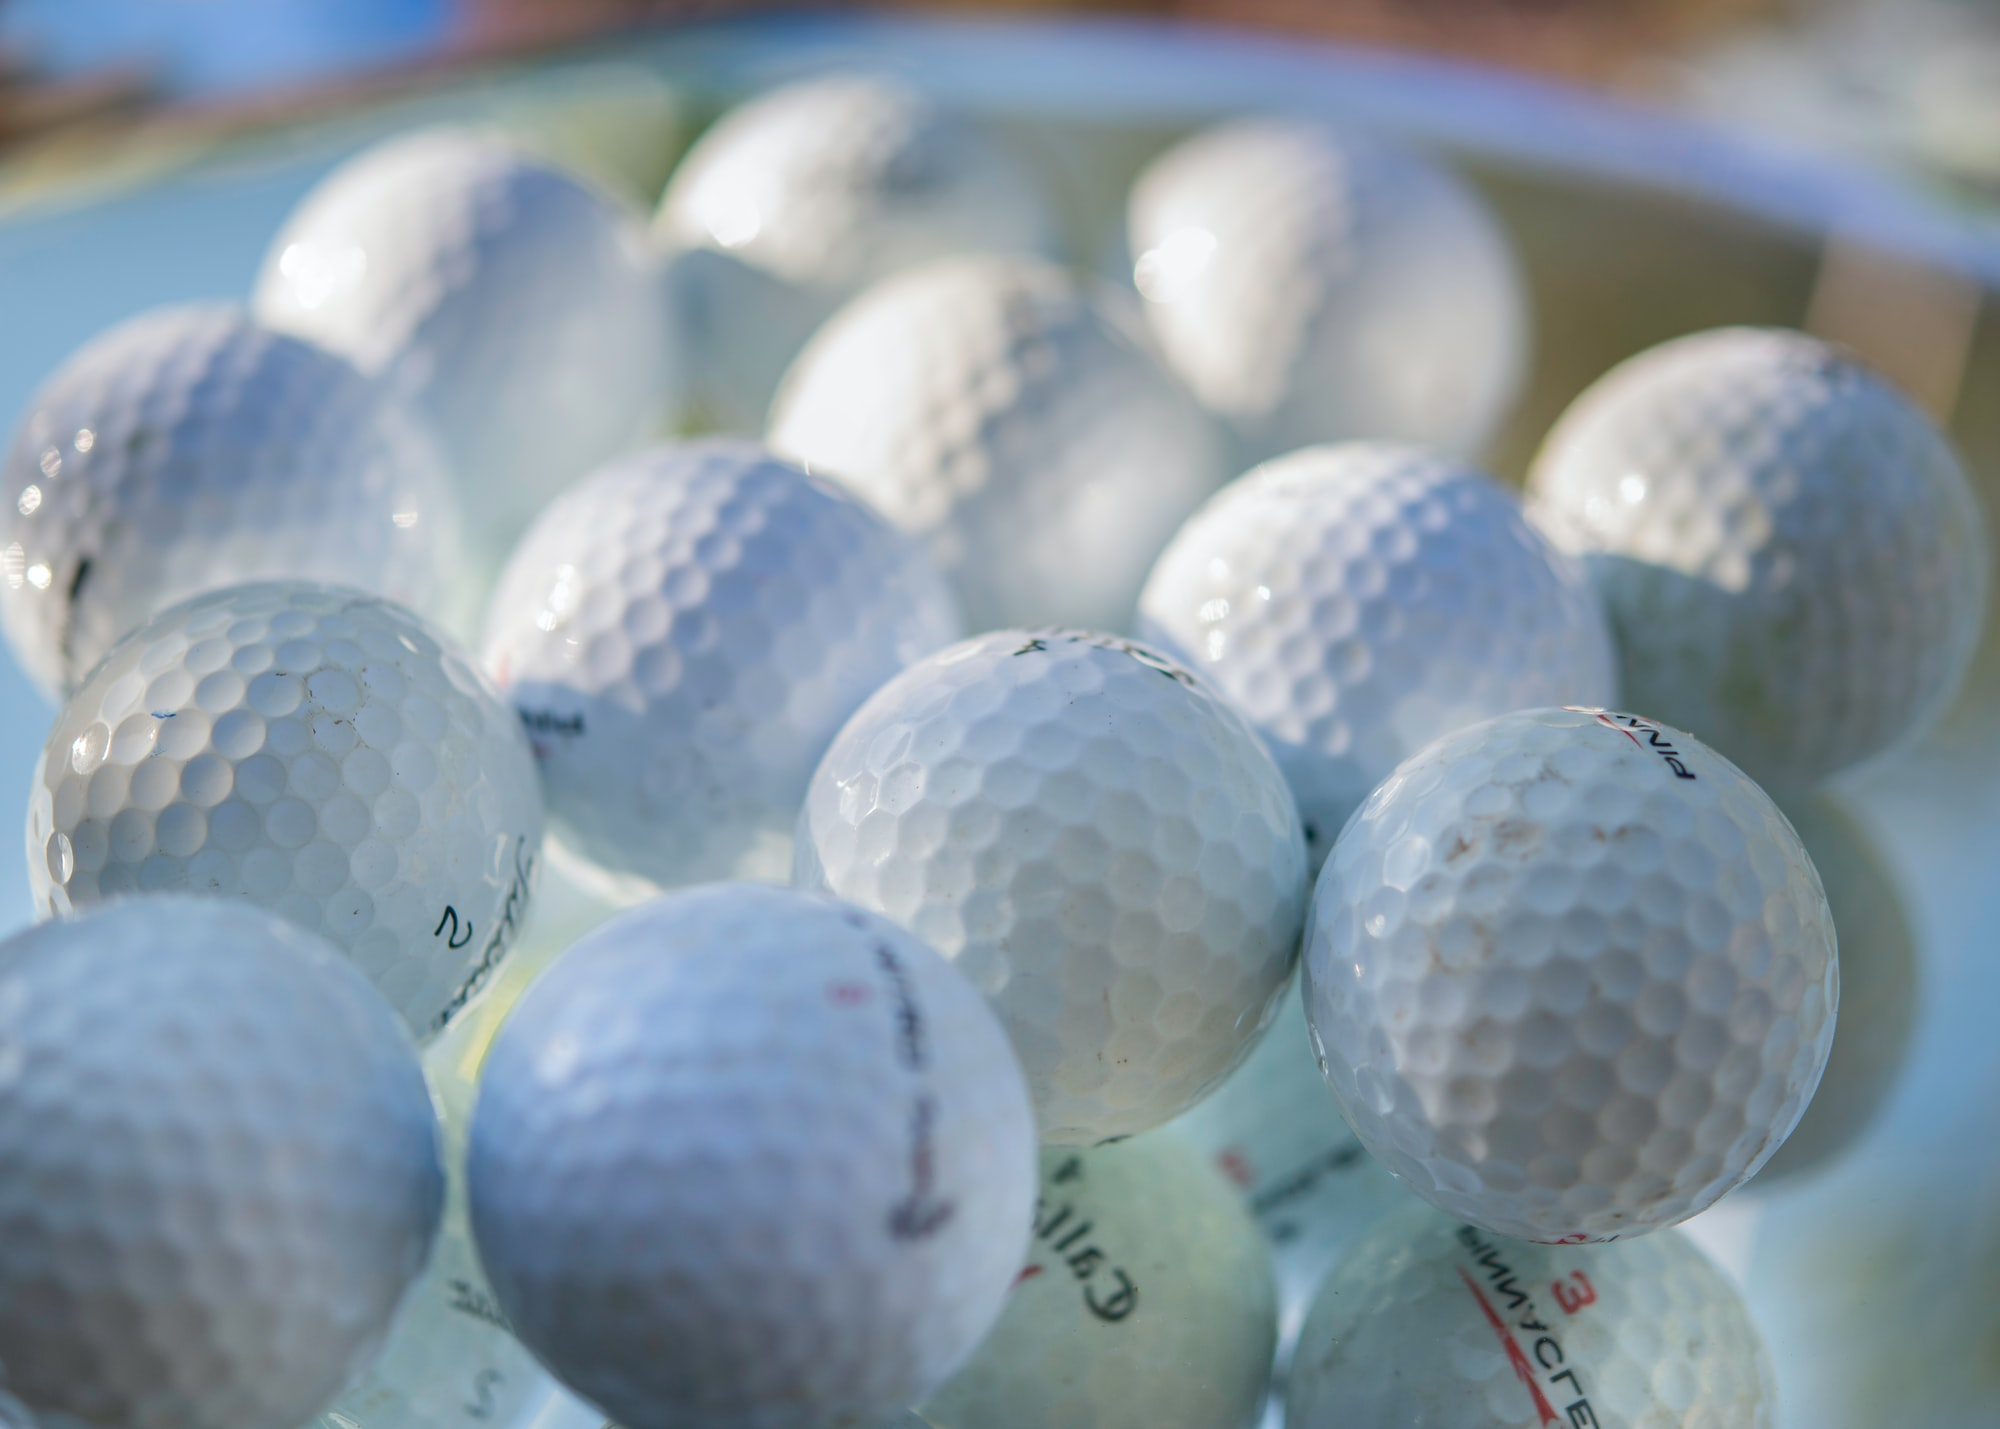 Collection of golf balls close up.